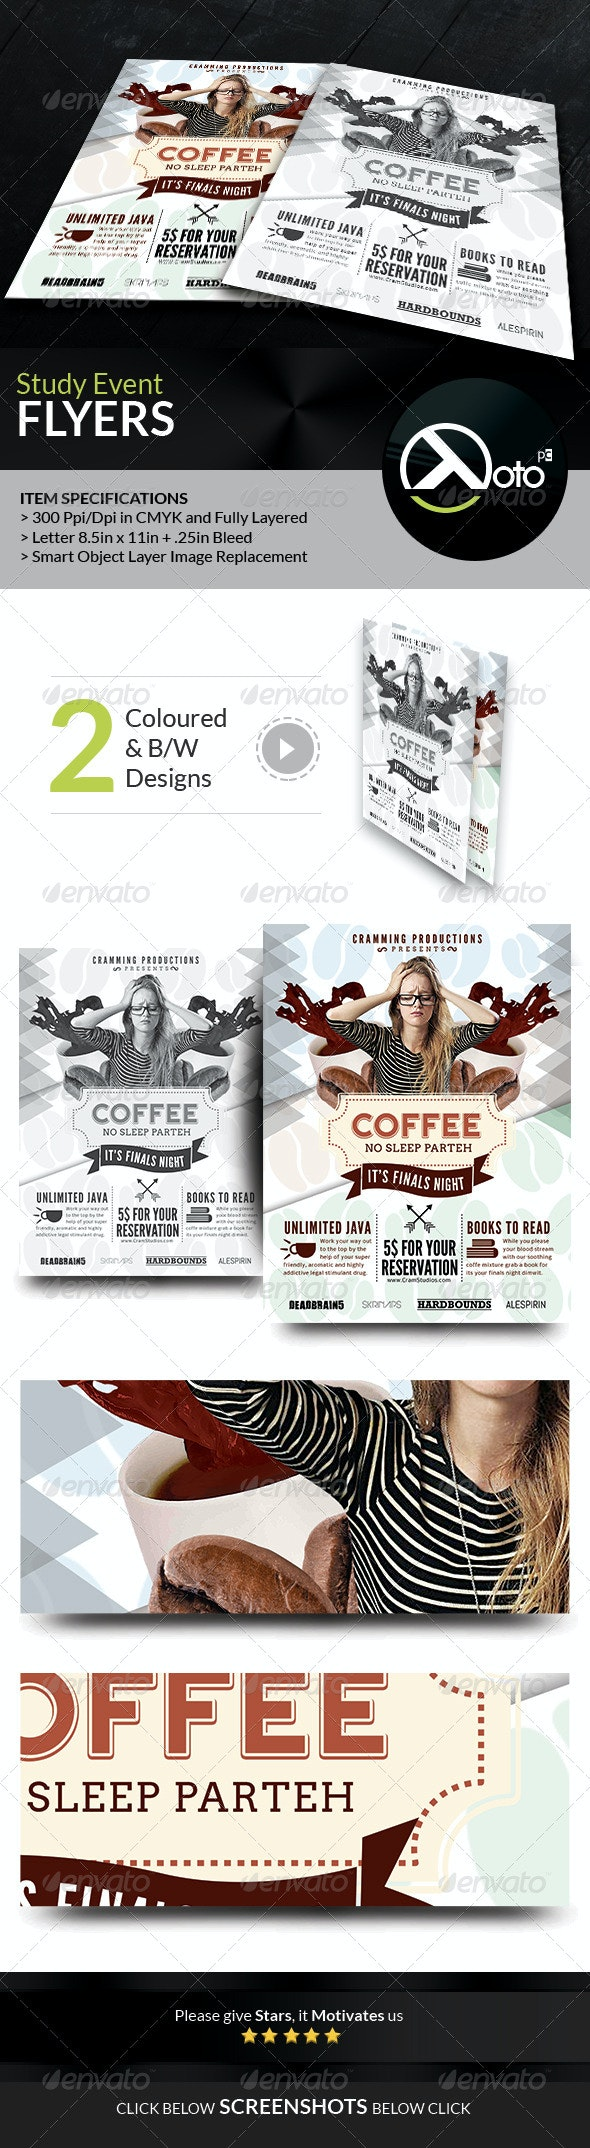 Coffee Study No Sleep Event Flyer - Events Flyers